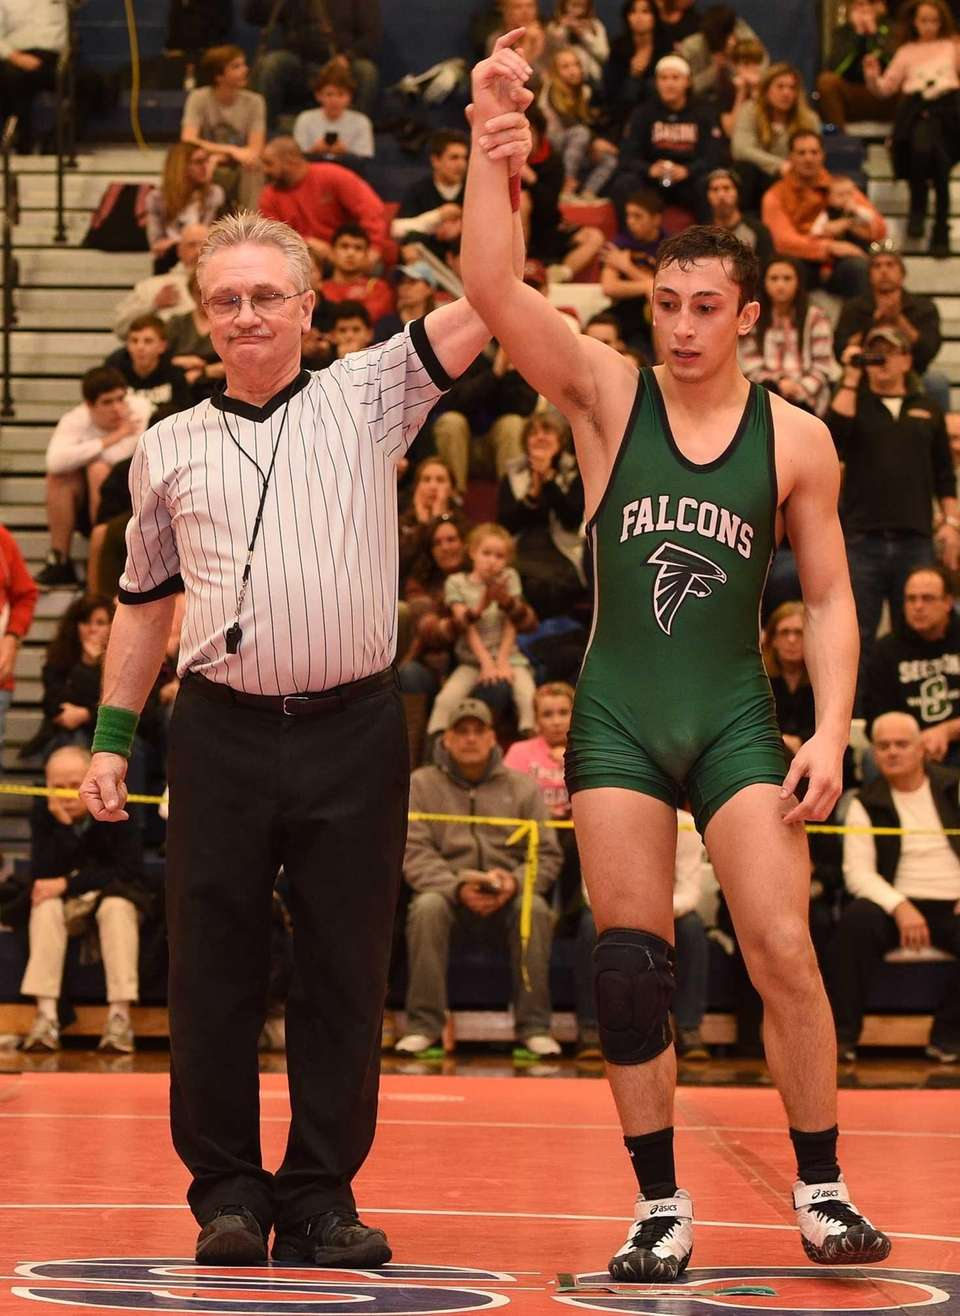 Andrew Cantatore, Locust Valley 132 pounds Nassau Division